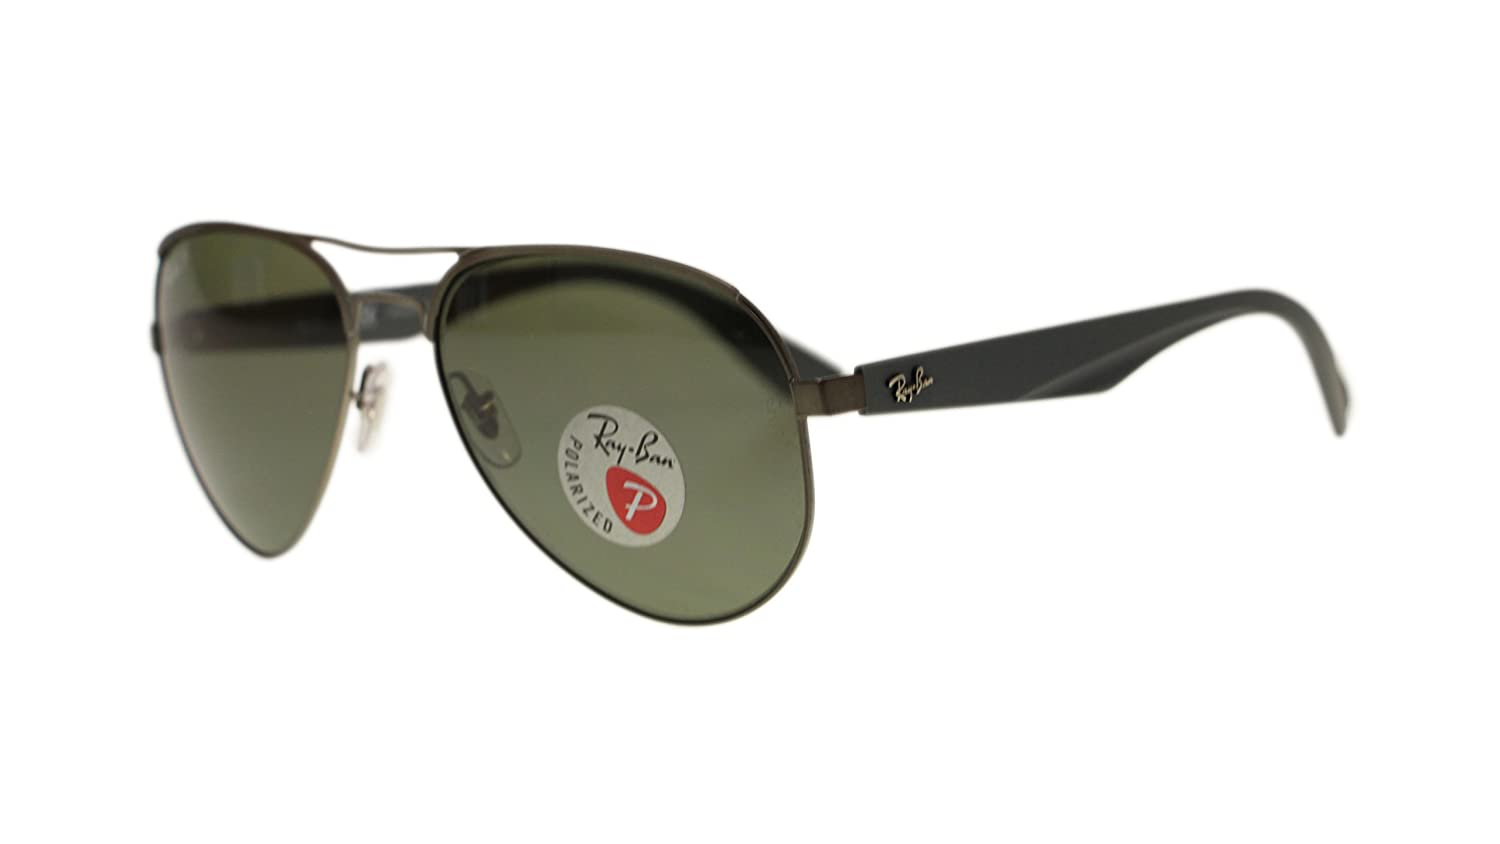 f82bf9ed3c Ray Ban Mens Sunglasses RB3523 029 9A Matte Gunmetal Green Polarized Lens  59mm Authentic  Amazon.co.uk  Clothing